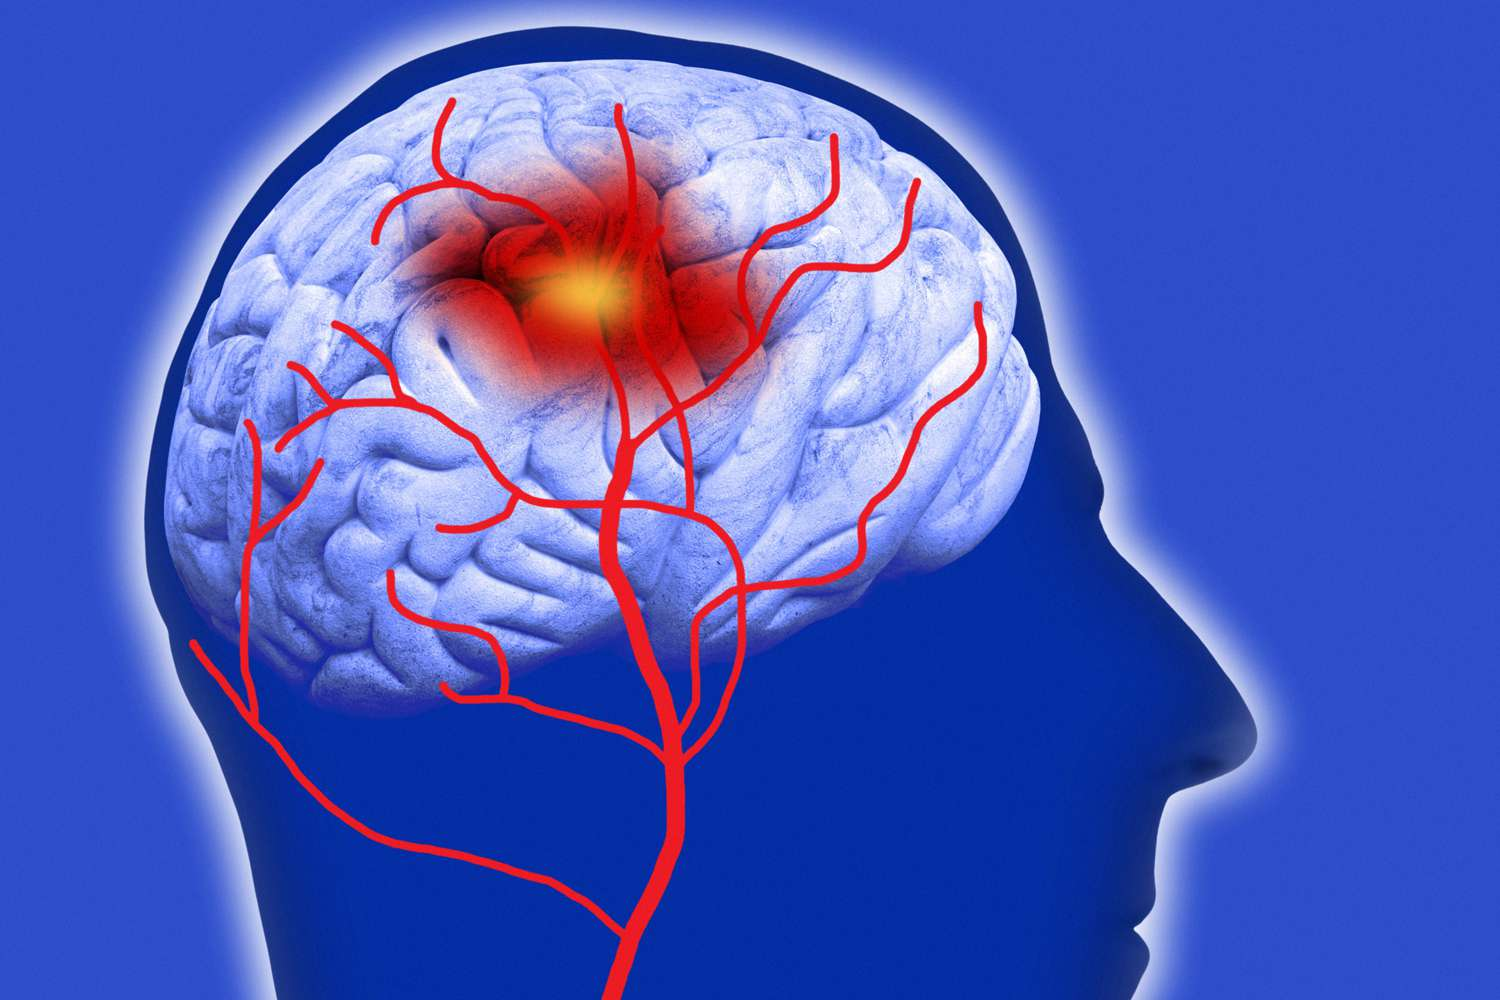 Illustration of the effects of a stroke in the brain